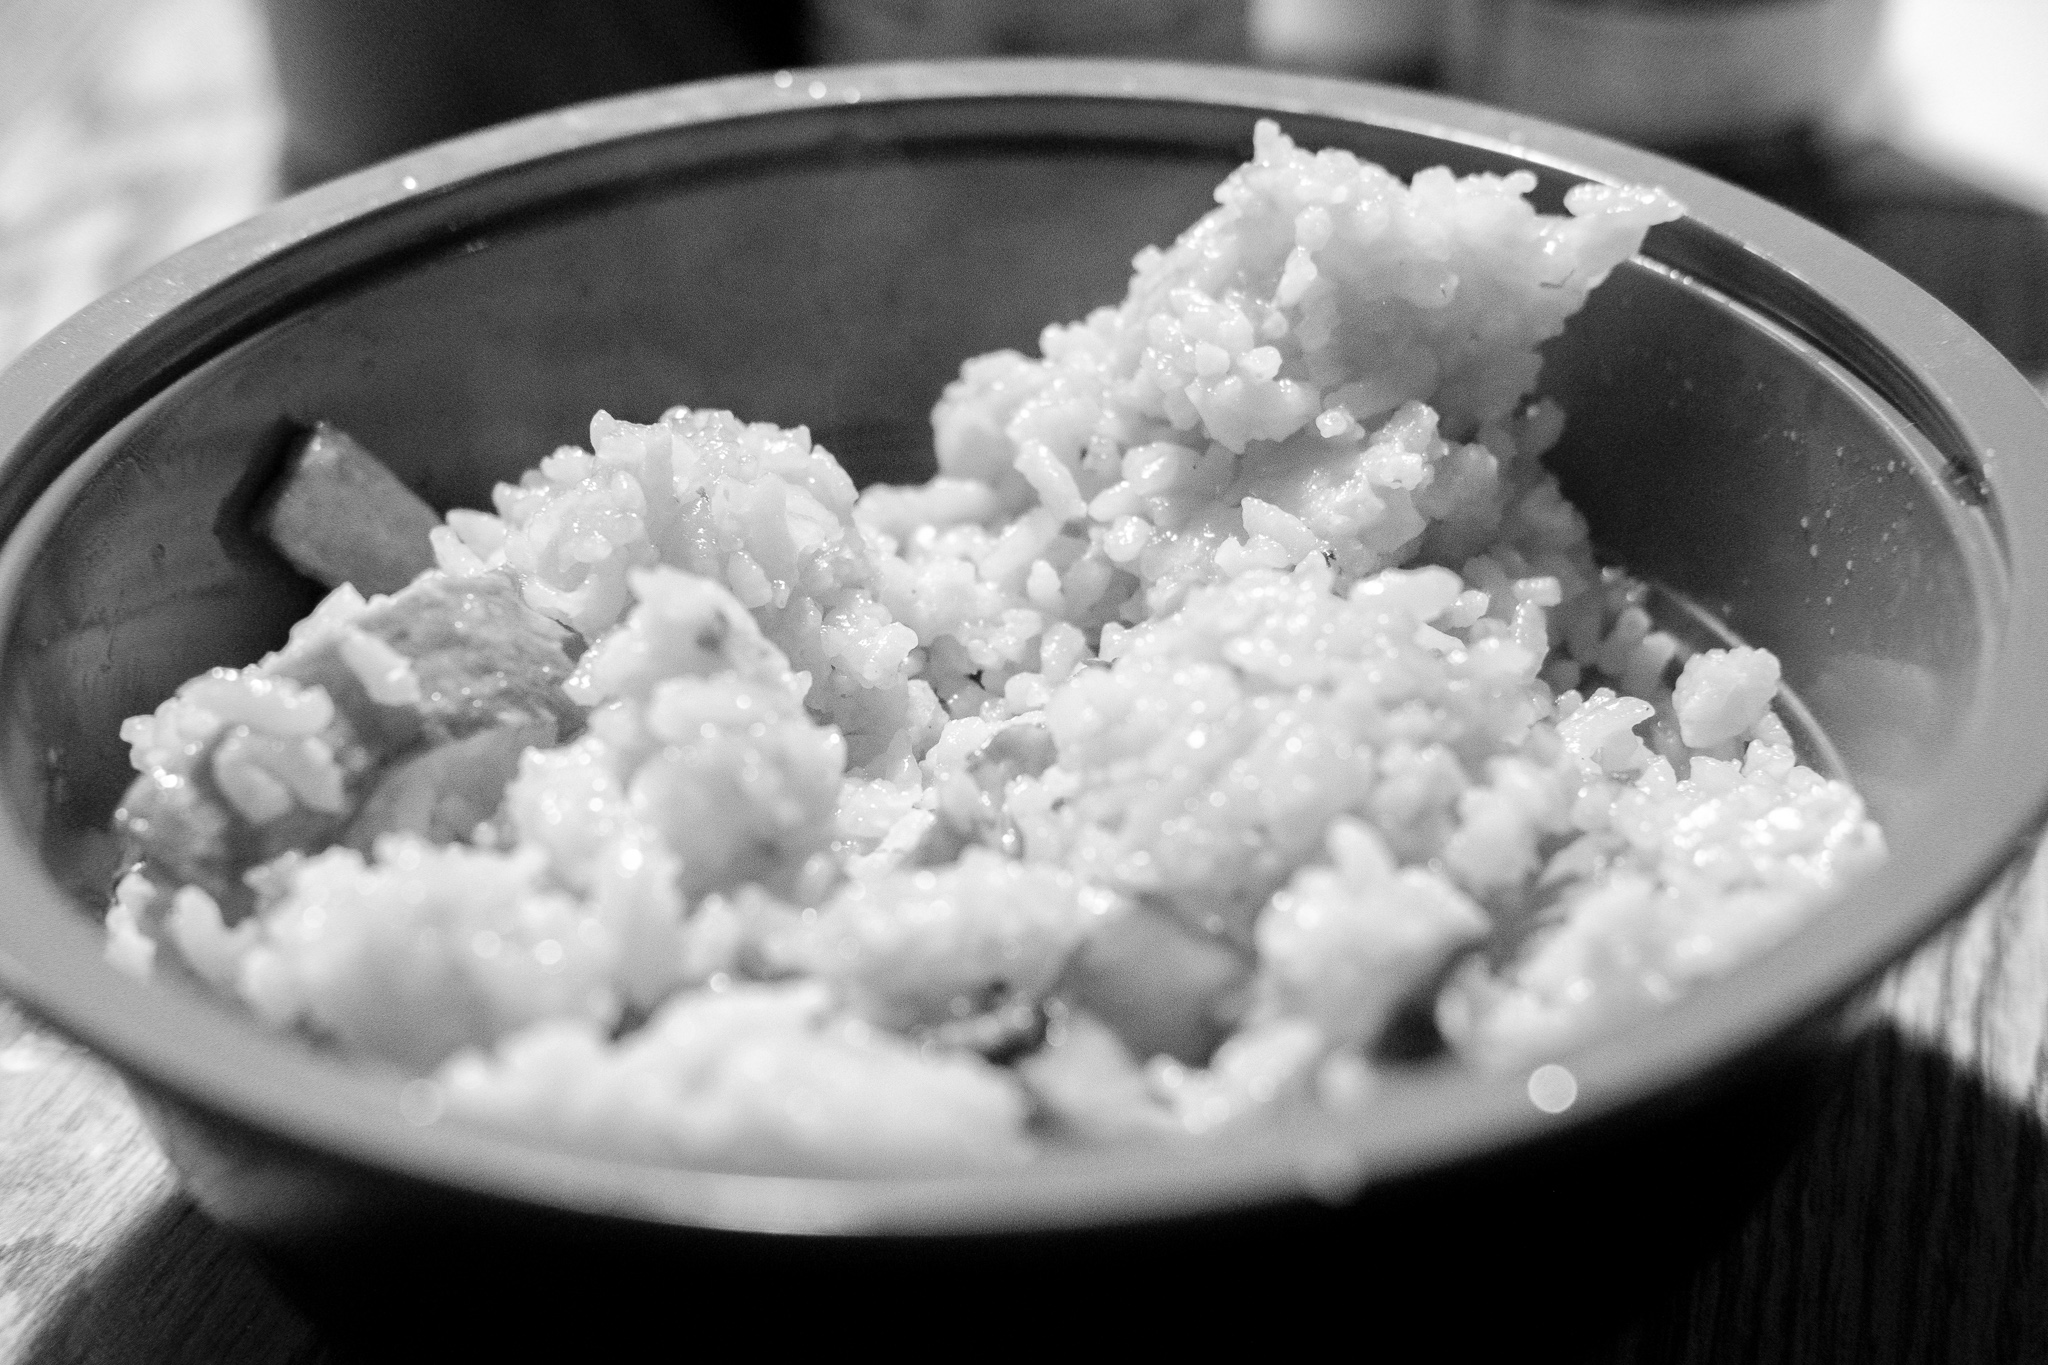 365 Day Black and White Challenge - Day 5 - Mushrooms and Rice  - Fuji XT-2, XF 35mm f/2